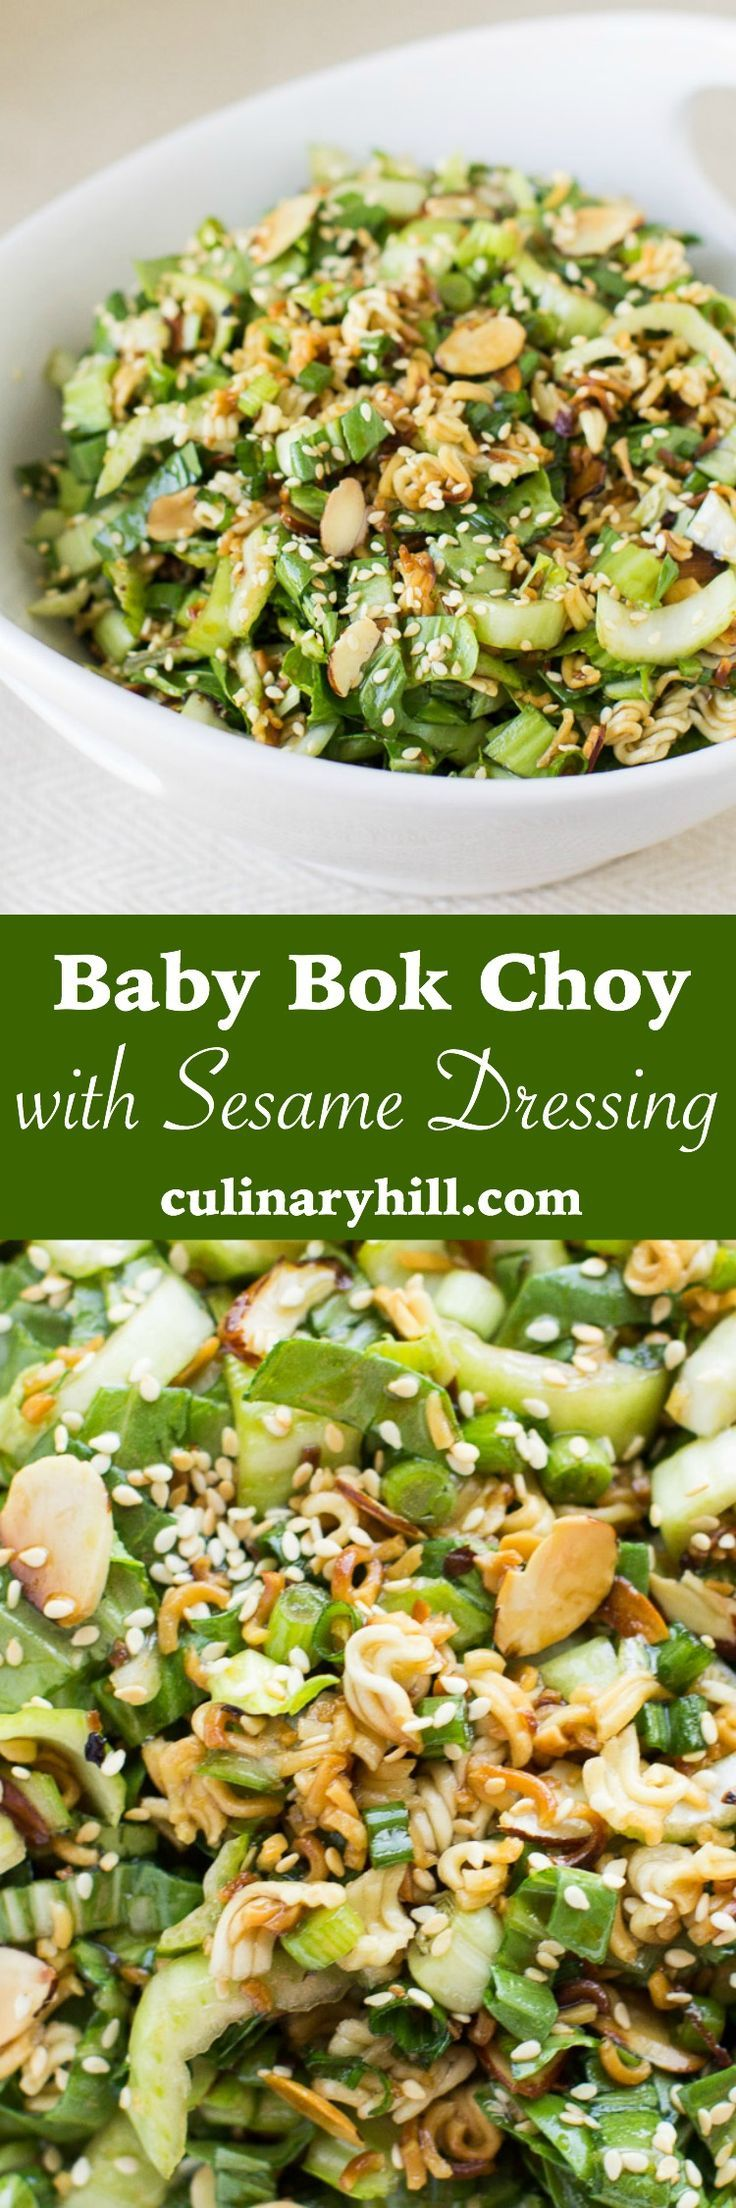 Baby Bok Choy with Sesame Dressing - Whether you're new to baby bok ...